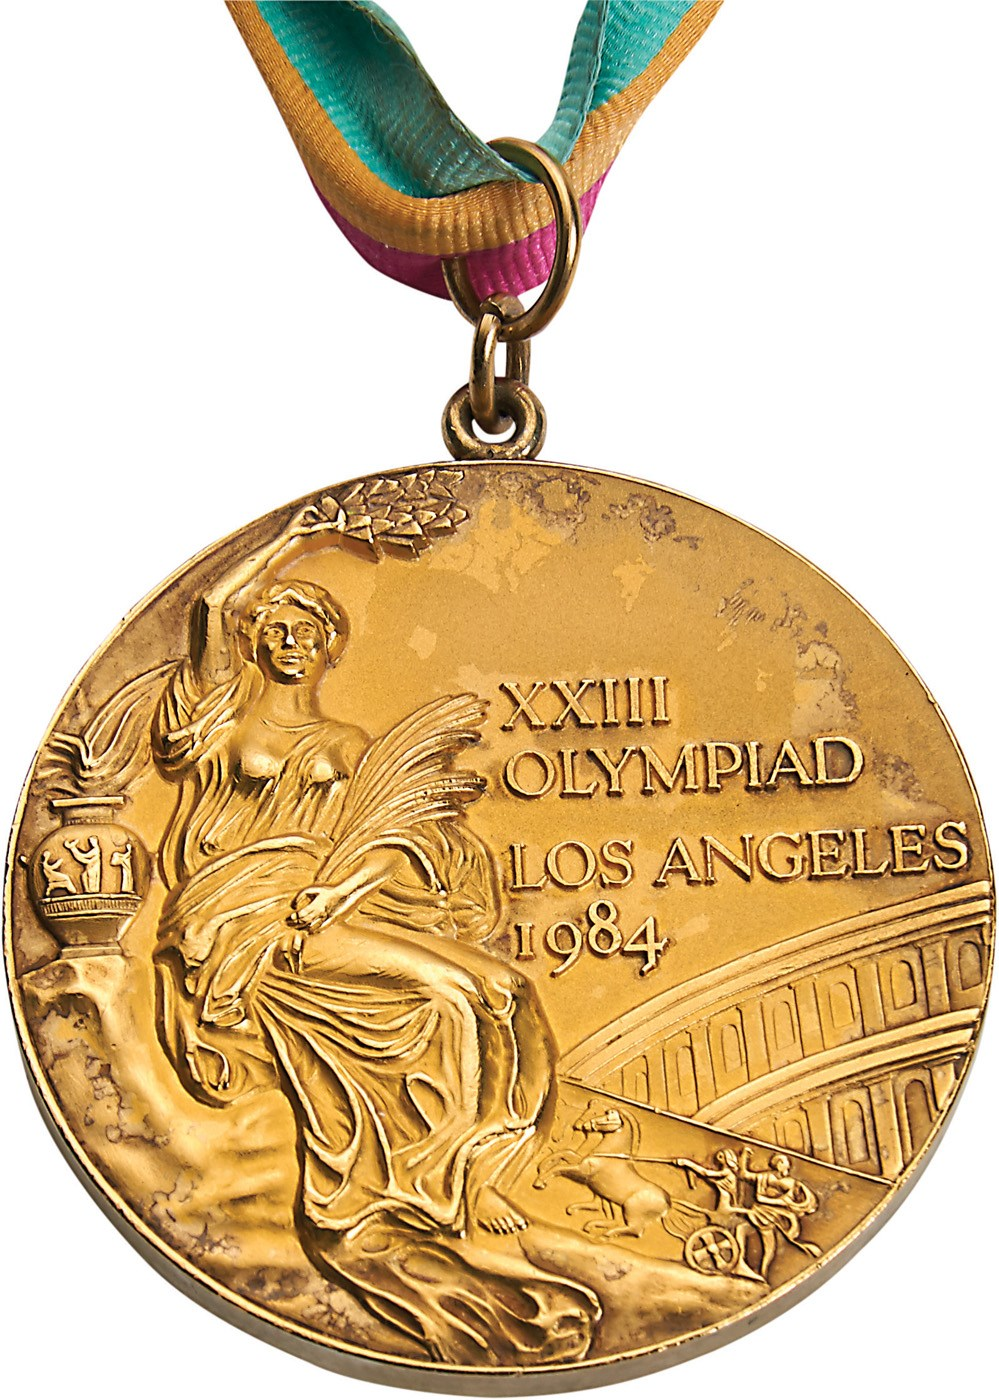 1984 Los Angeles Olympics USA Basketball Gold Medal Presented to Teresa Edwards